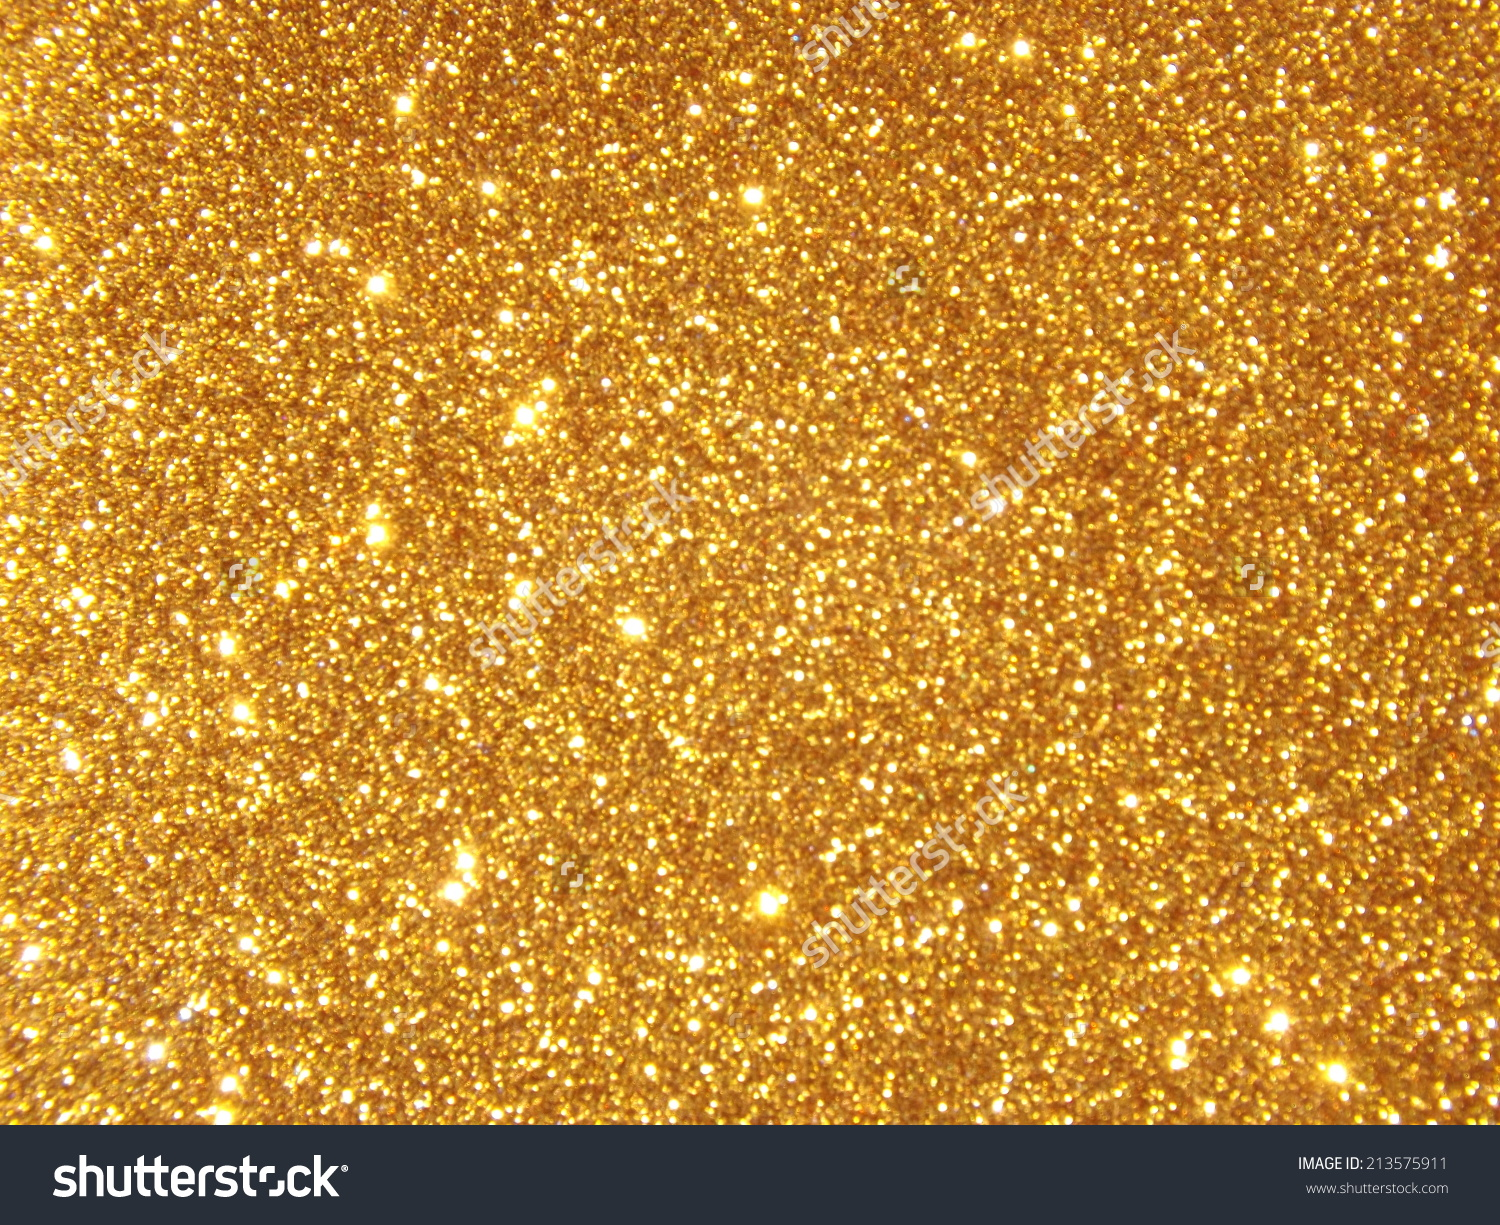 Gold Shiny Wallpaper